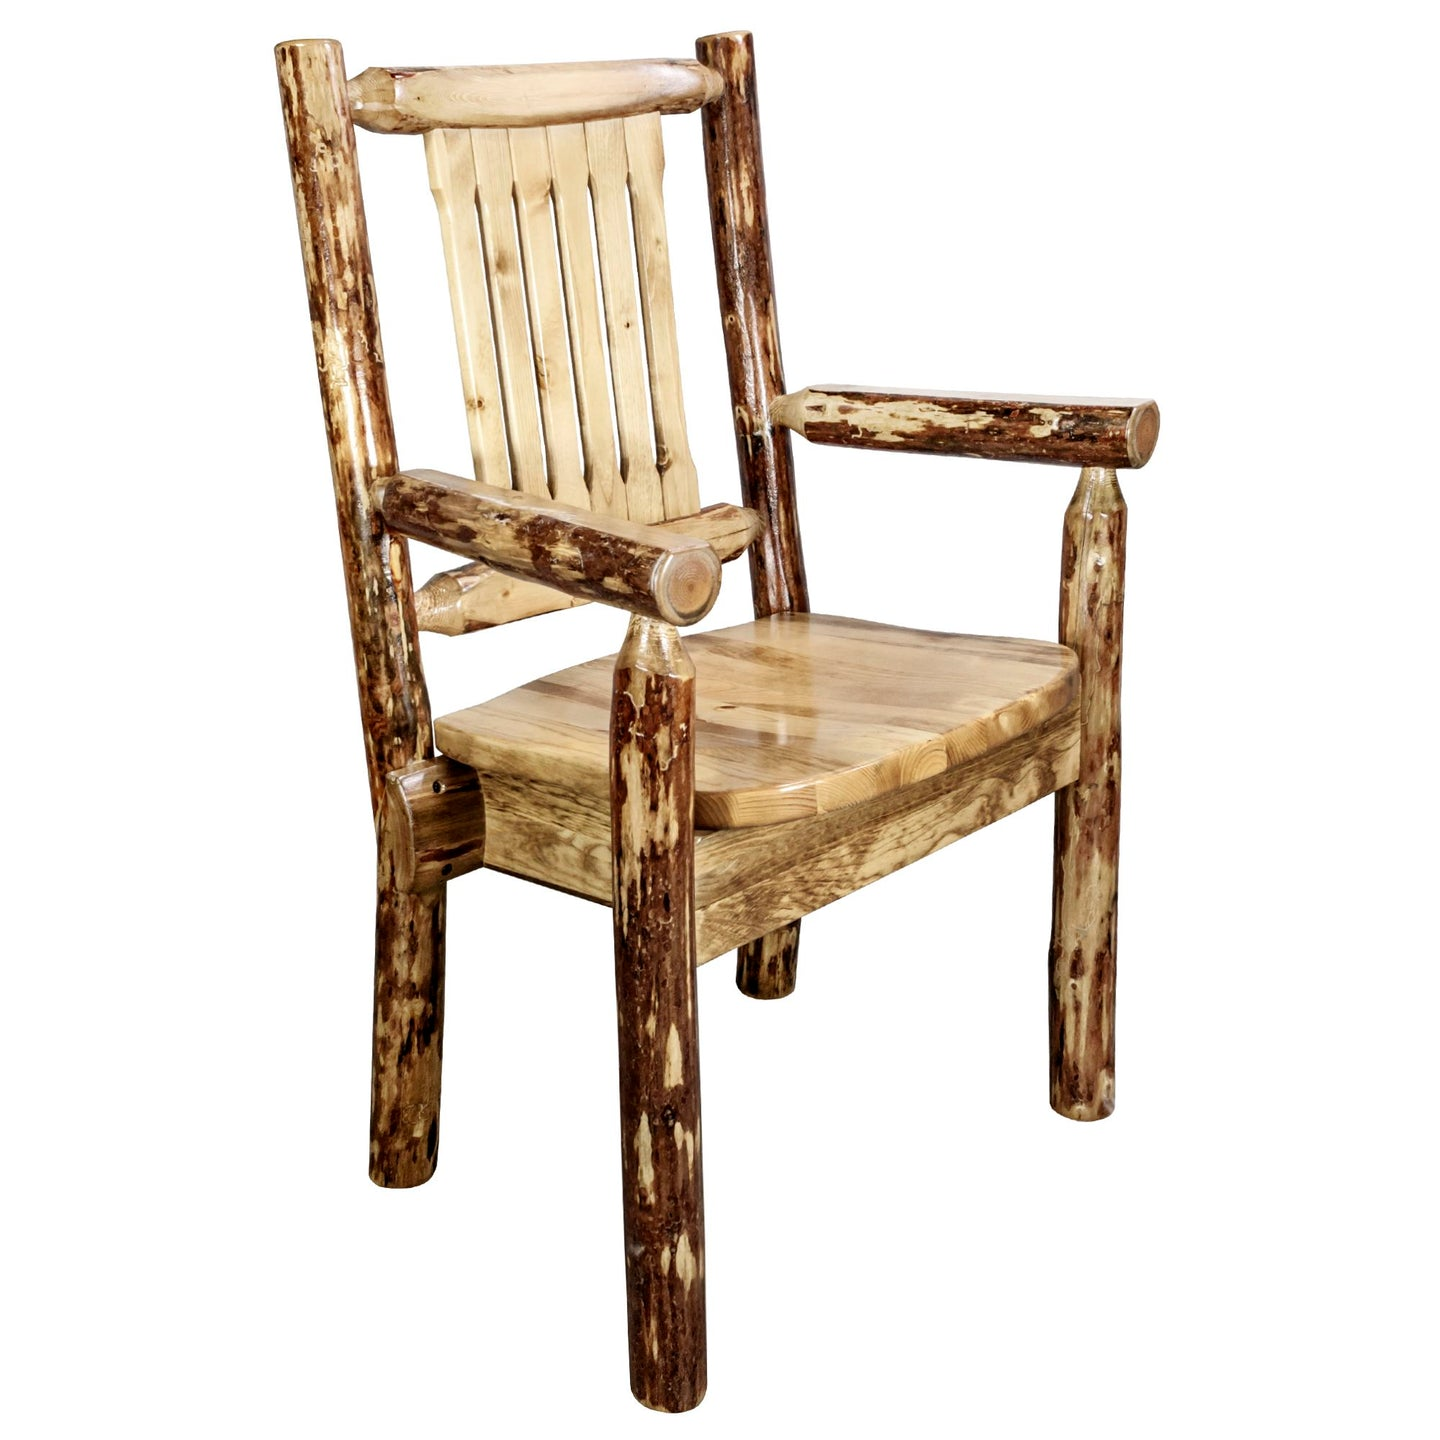 Glacier Country Rustic Captain's Chair w. Ergonomic Wooden Seat